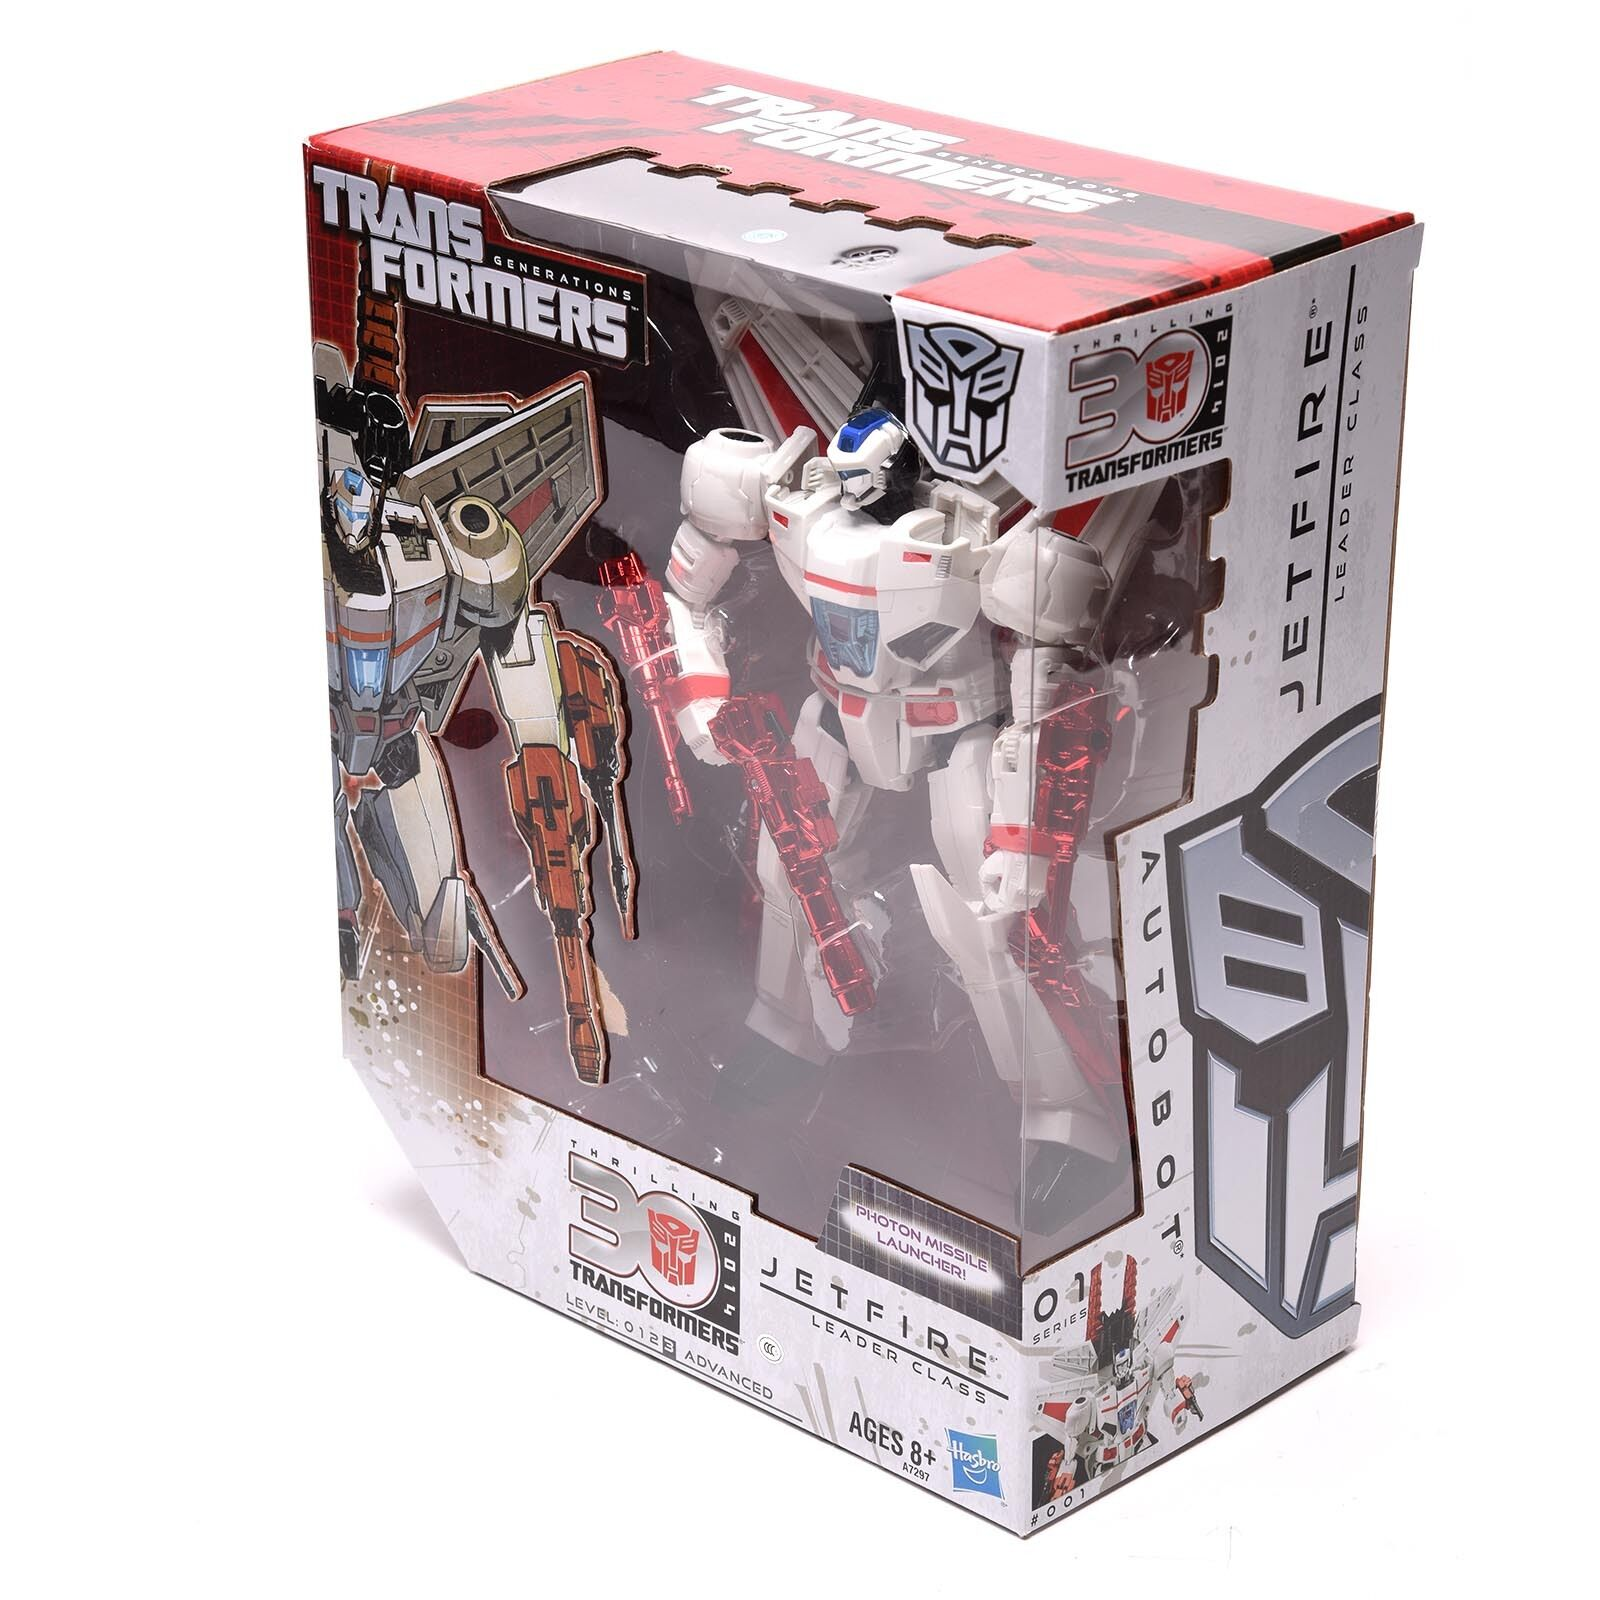 NEW Hasbro Transformers Generations IDW 30eme Anniversaire Leader Class Jetfire